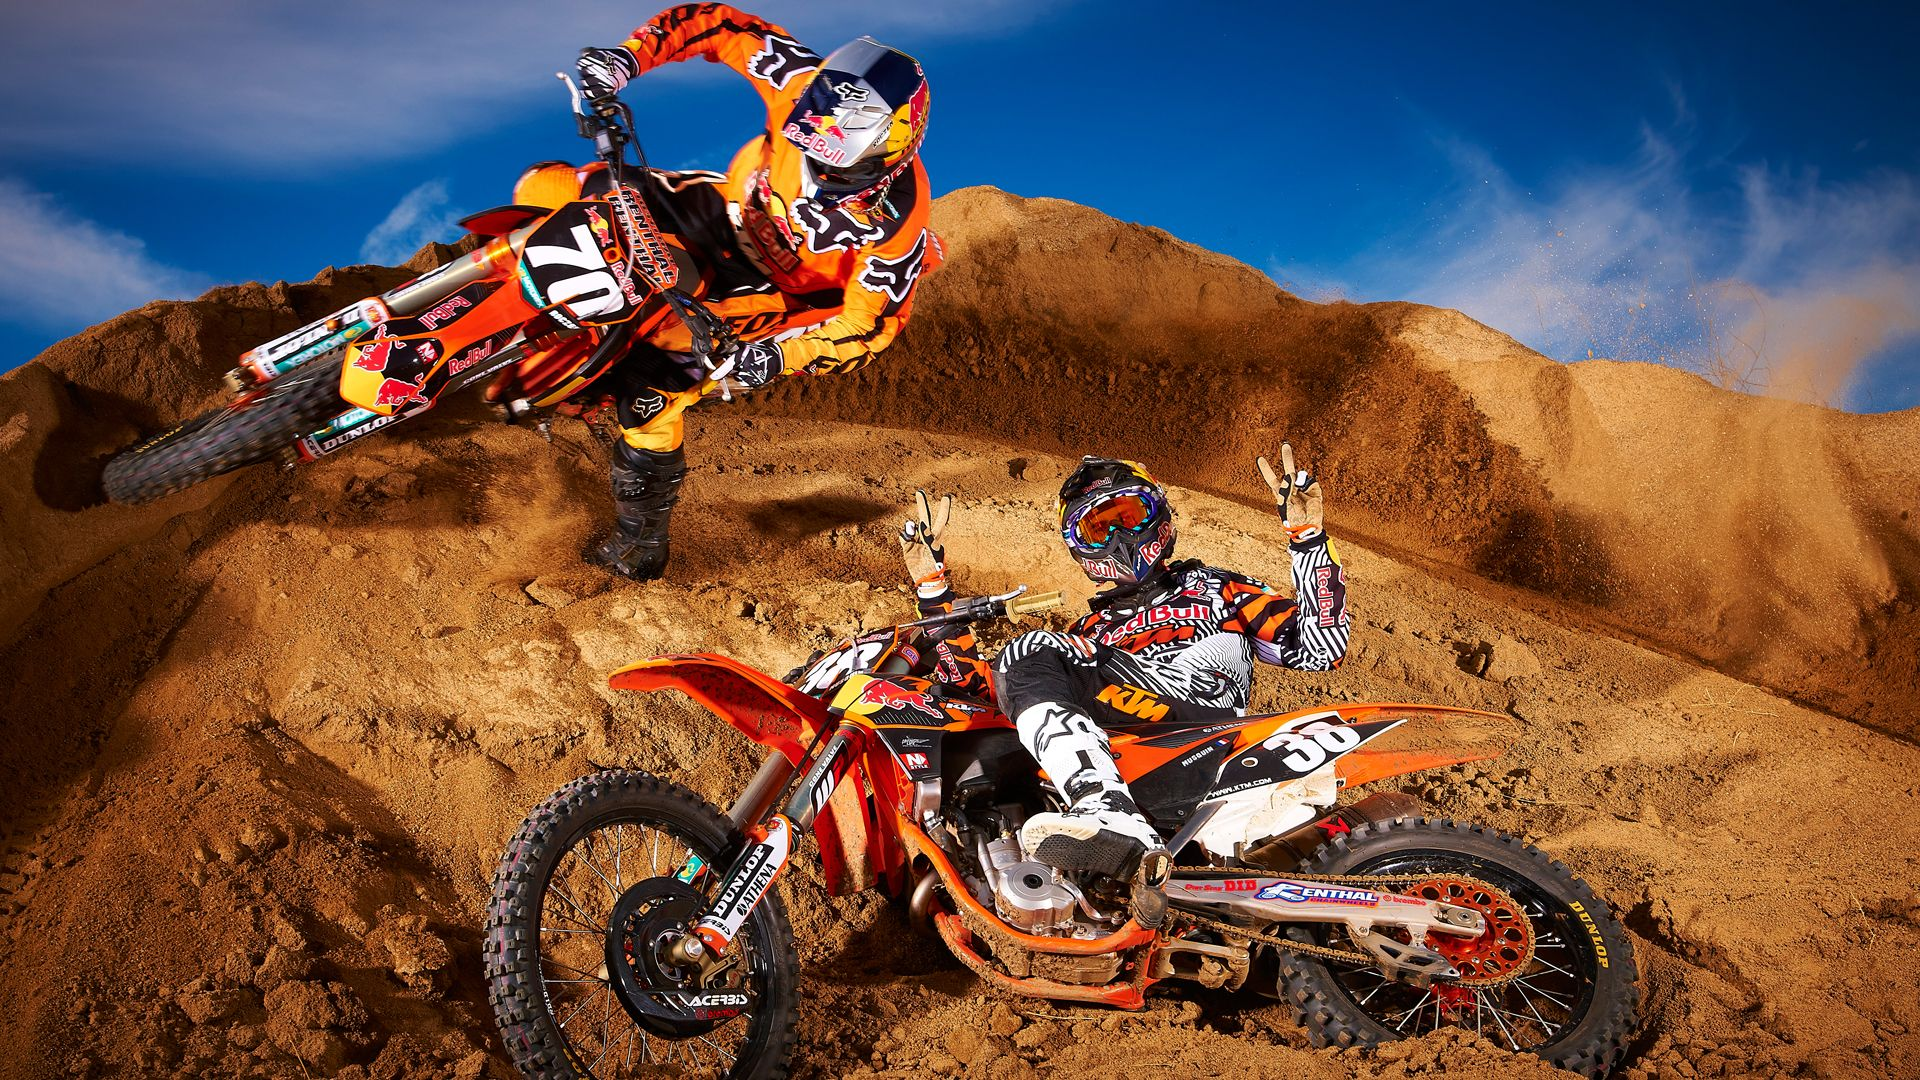 Ktm Dirt Bike Wallpapers Top Free Ktm Dirt Bike Backgrounds Wallpaperaccess